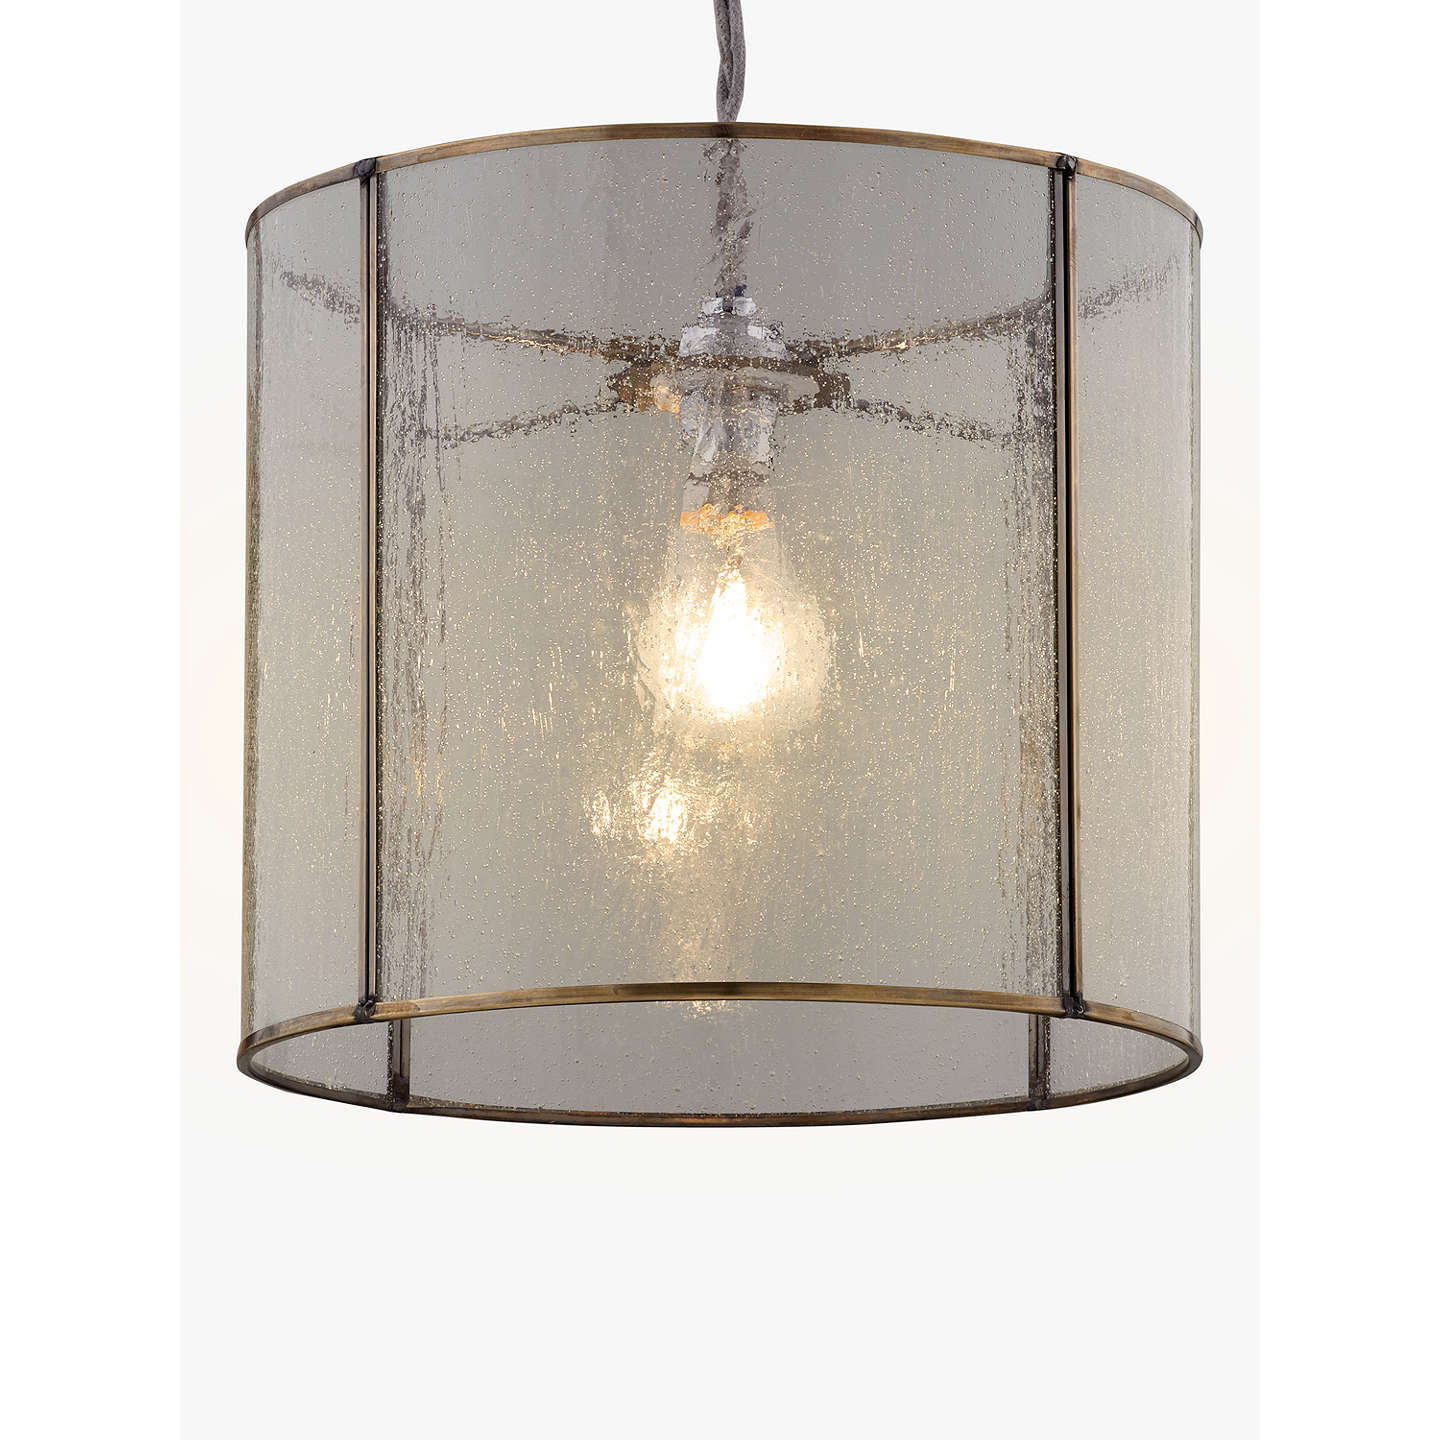 John Lewis Easy-to-fit Leighton Bubble Glass Ceiling Shade